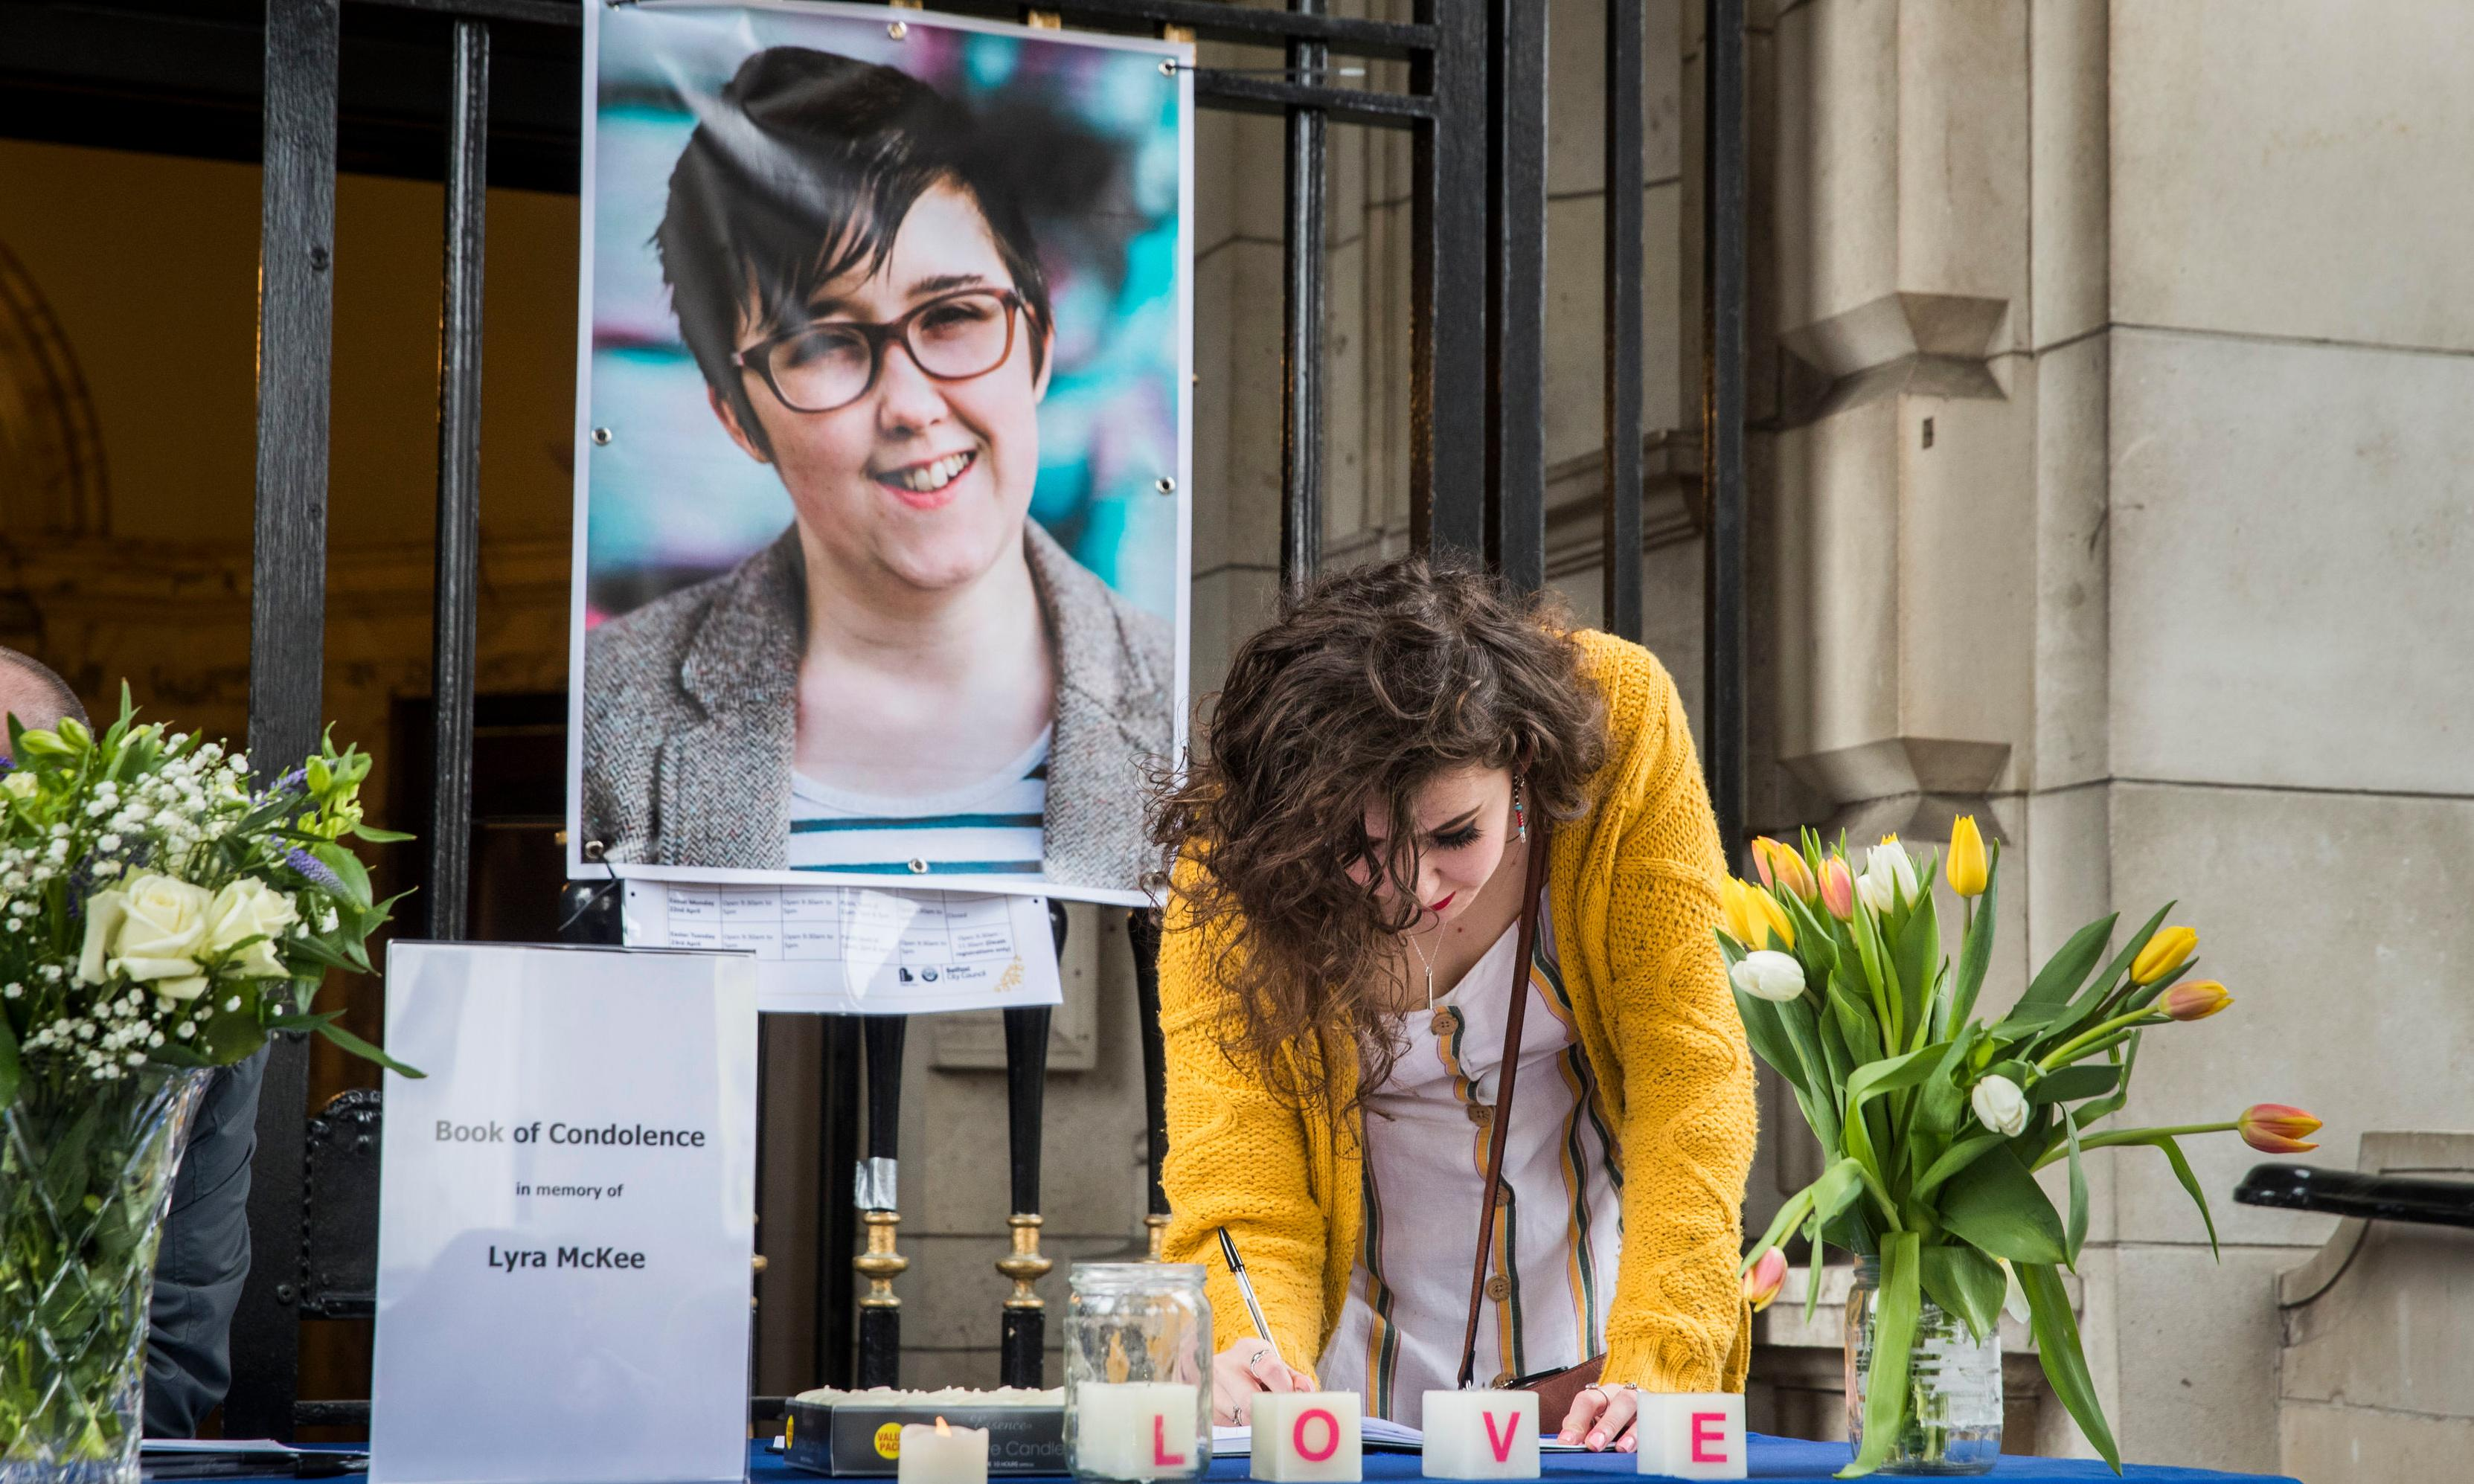 The tragic killing of Lyra McKee in Derry shows how hard it is for wars to end